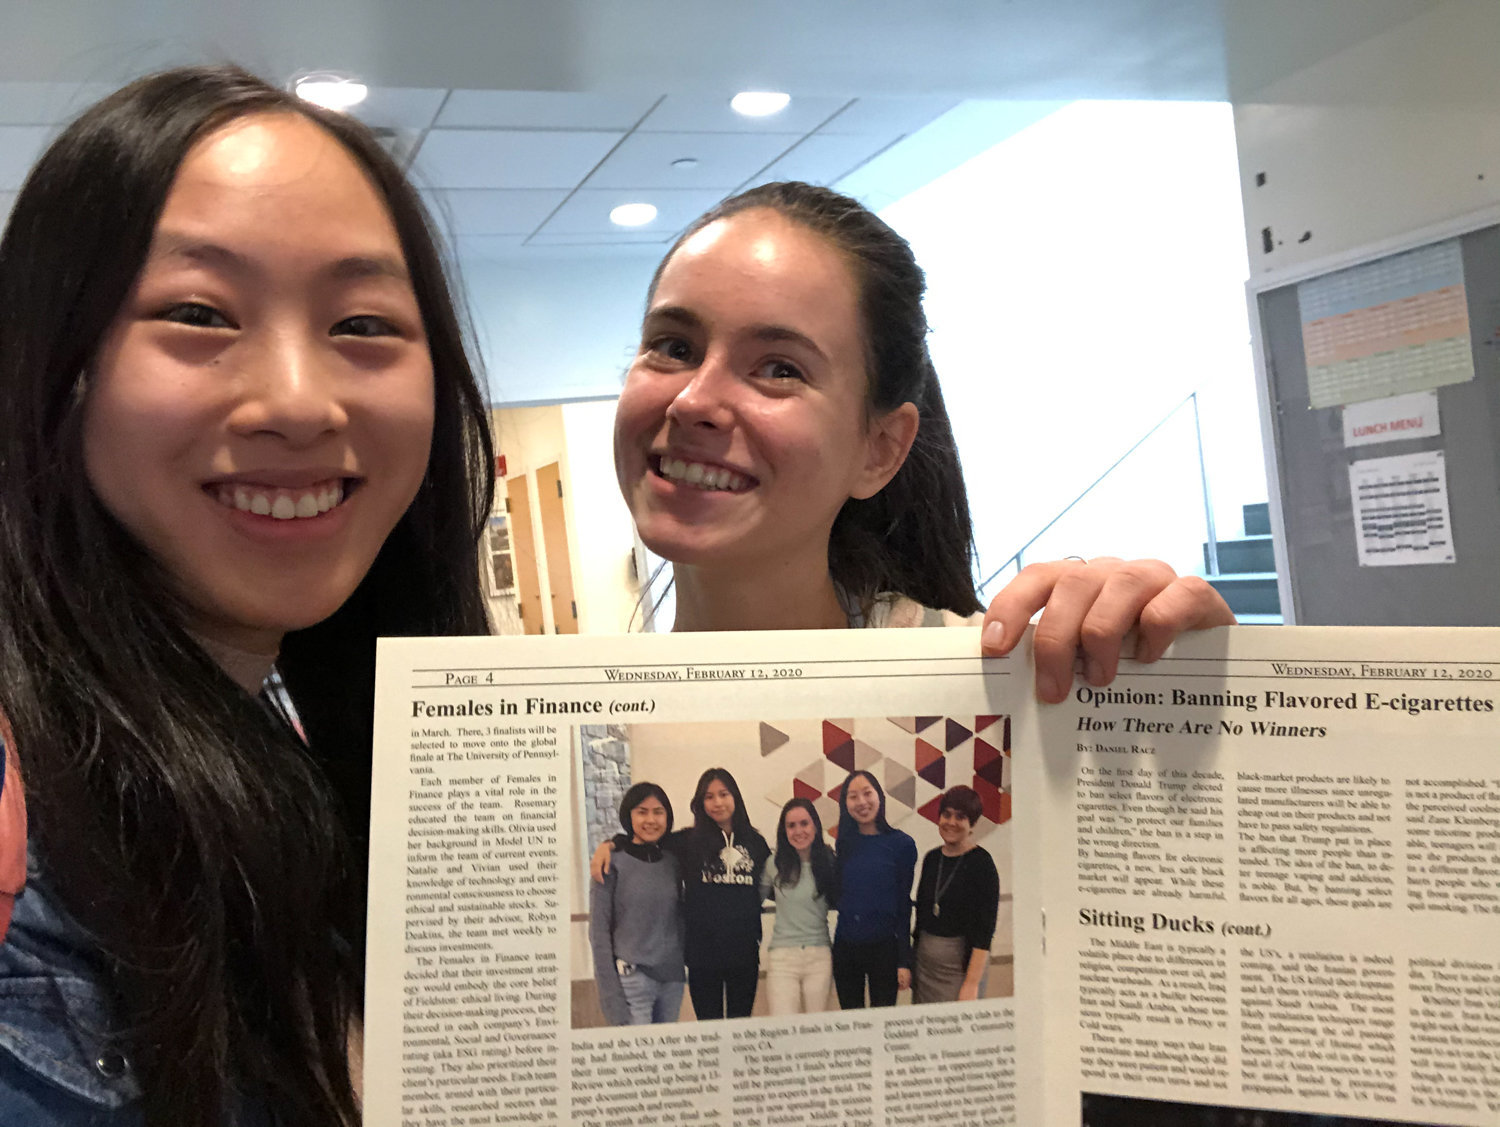 Olivia Pollack and Rosemary Jiang were thrilled about being featured in the Feb. 12 issue of The Fieldston News. Pollack and Jiang are members of Ethical Culture Fieldston School's Females in Finance Club, which had an impressive first year before the coronavirus pandemic intervened.